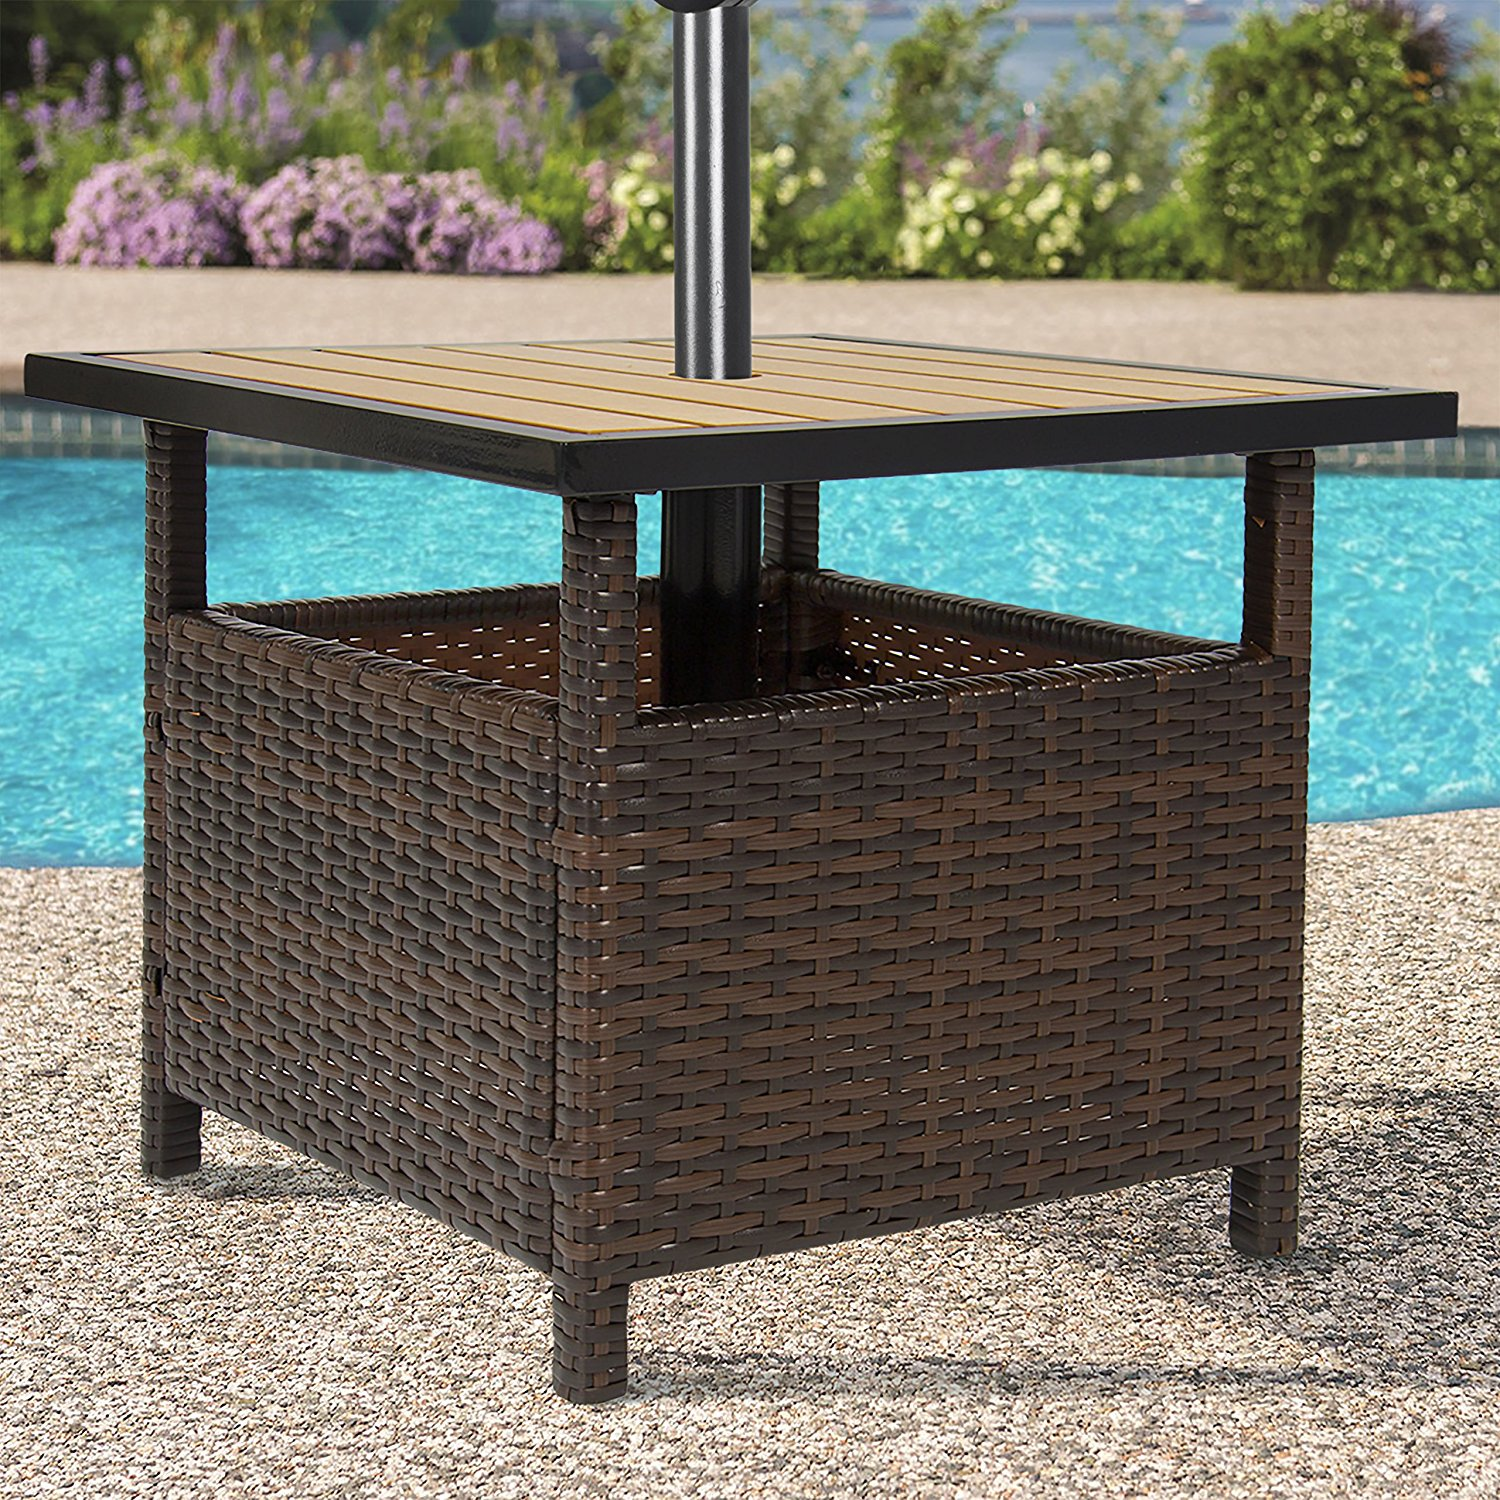 table patio furniture end tables outdoor sectional san diego colorful coffee closeout accent ideas side full size antique round oak value target marble top honey white shelves